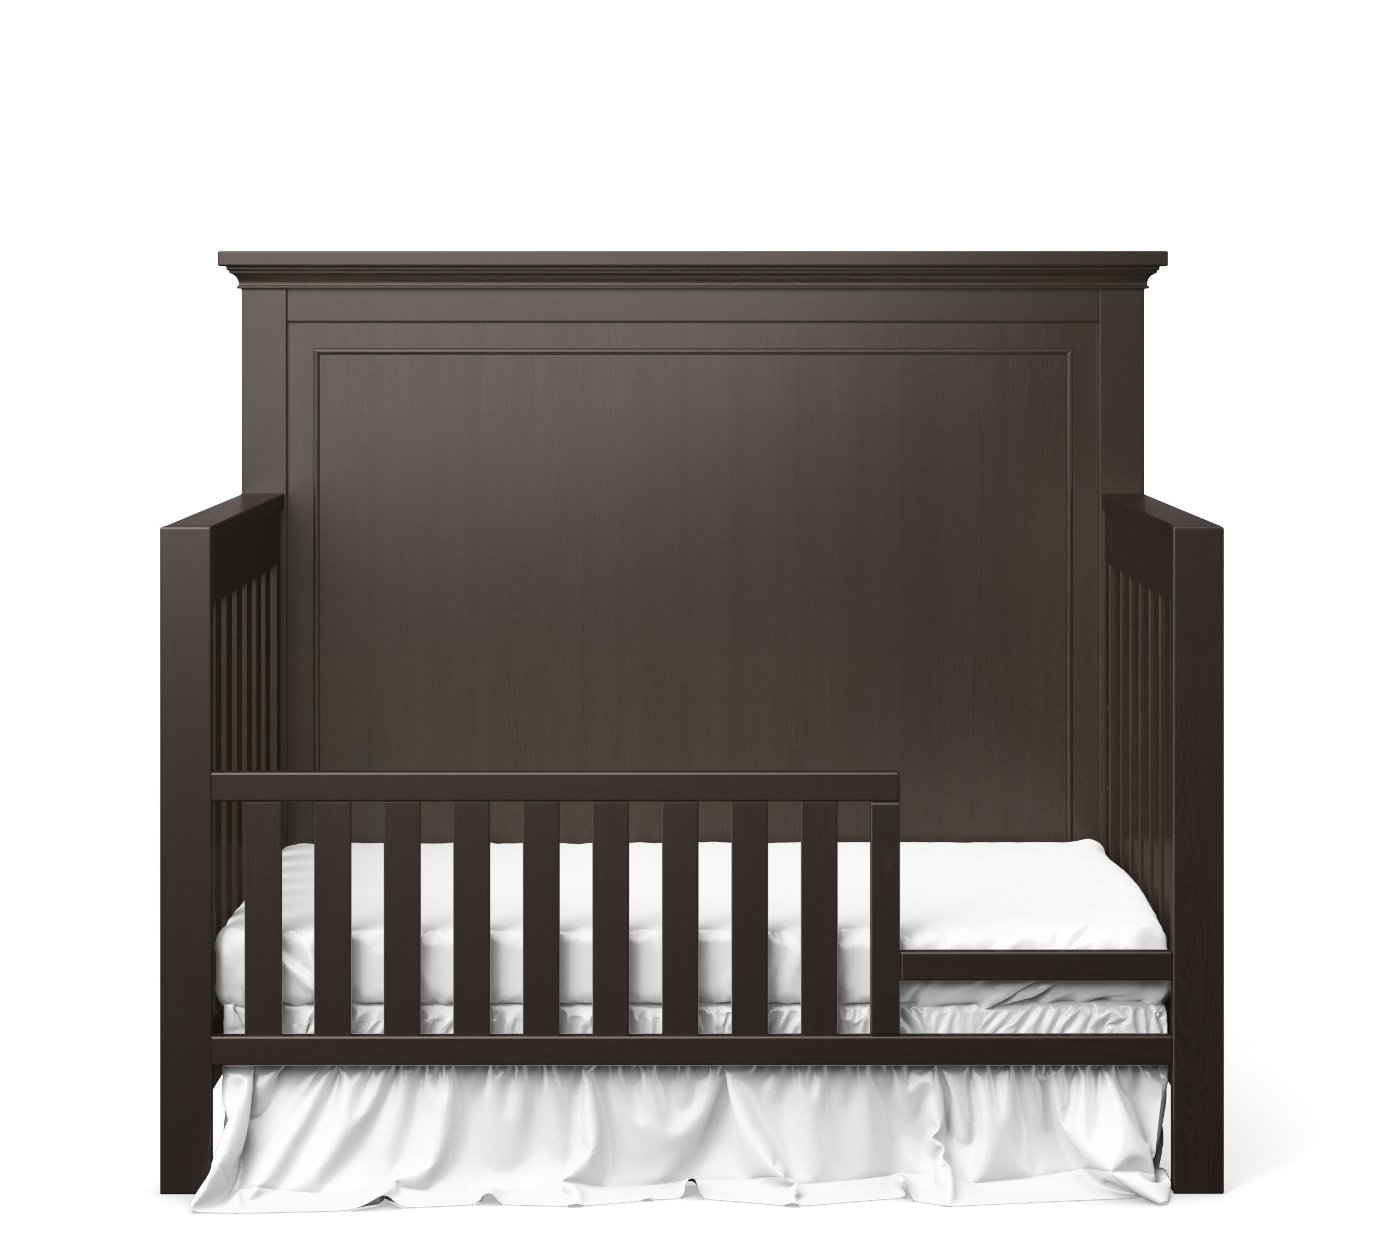 SILVA Furniture Toddler Guard Rail - Cherry